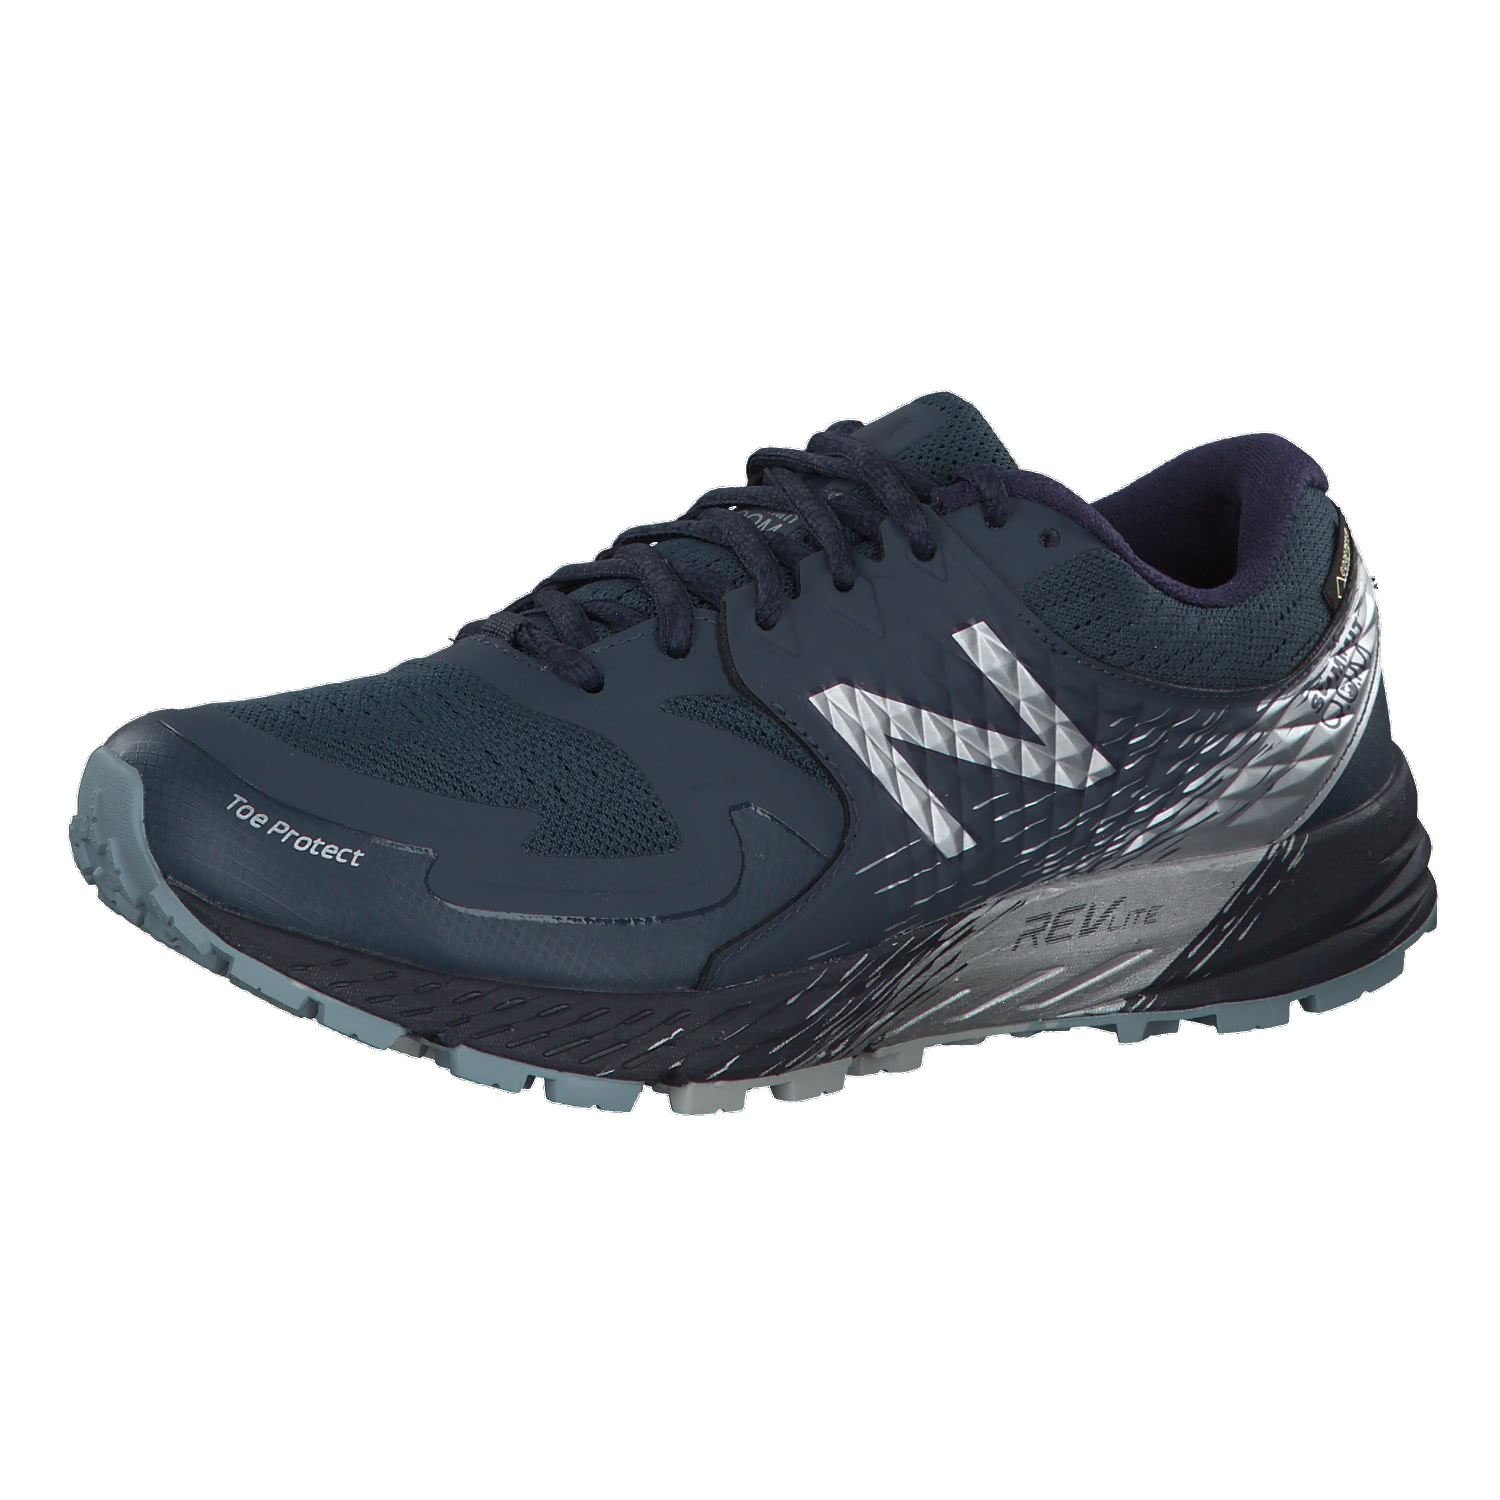 50 K Trail Damen o Balance Gtx Schuhe 653871 m Running Summit New TPxYwEE